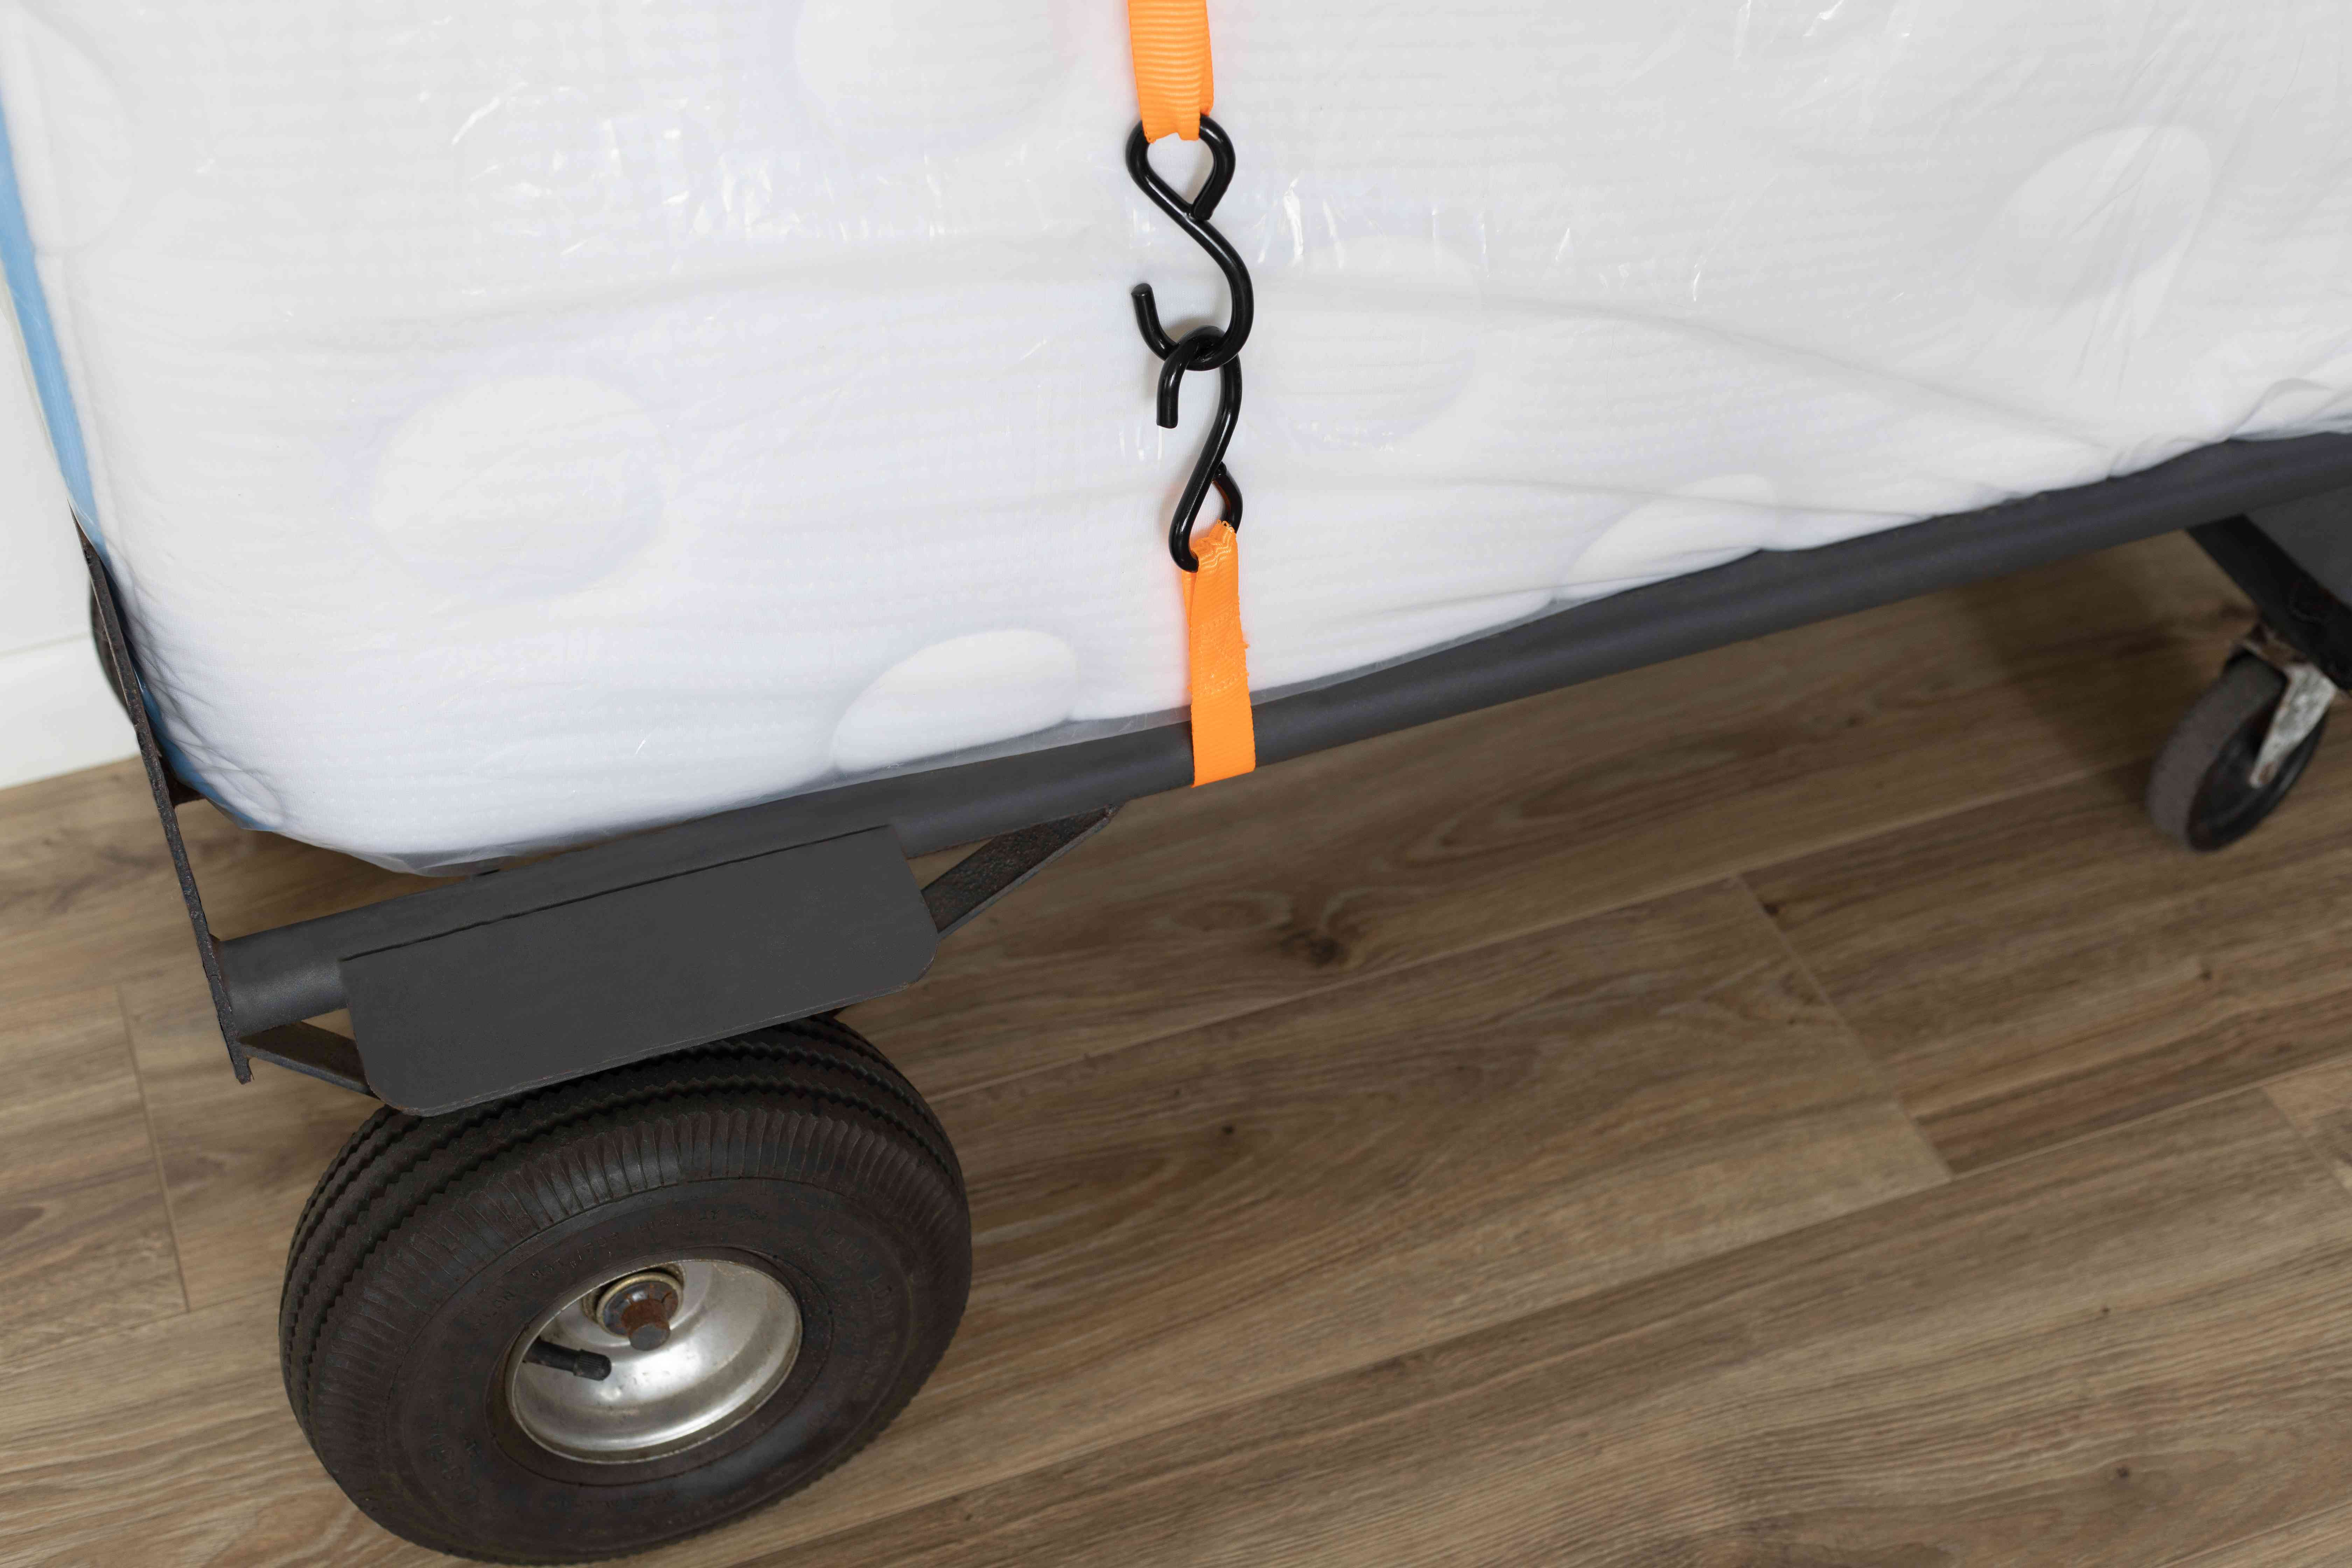 Mattress placed on furniture folly and secured with orange rachet straps for moving